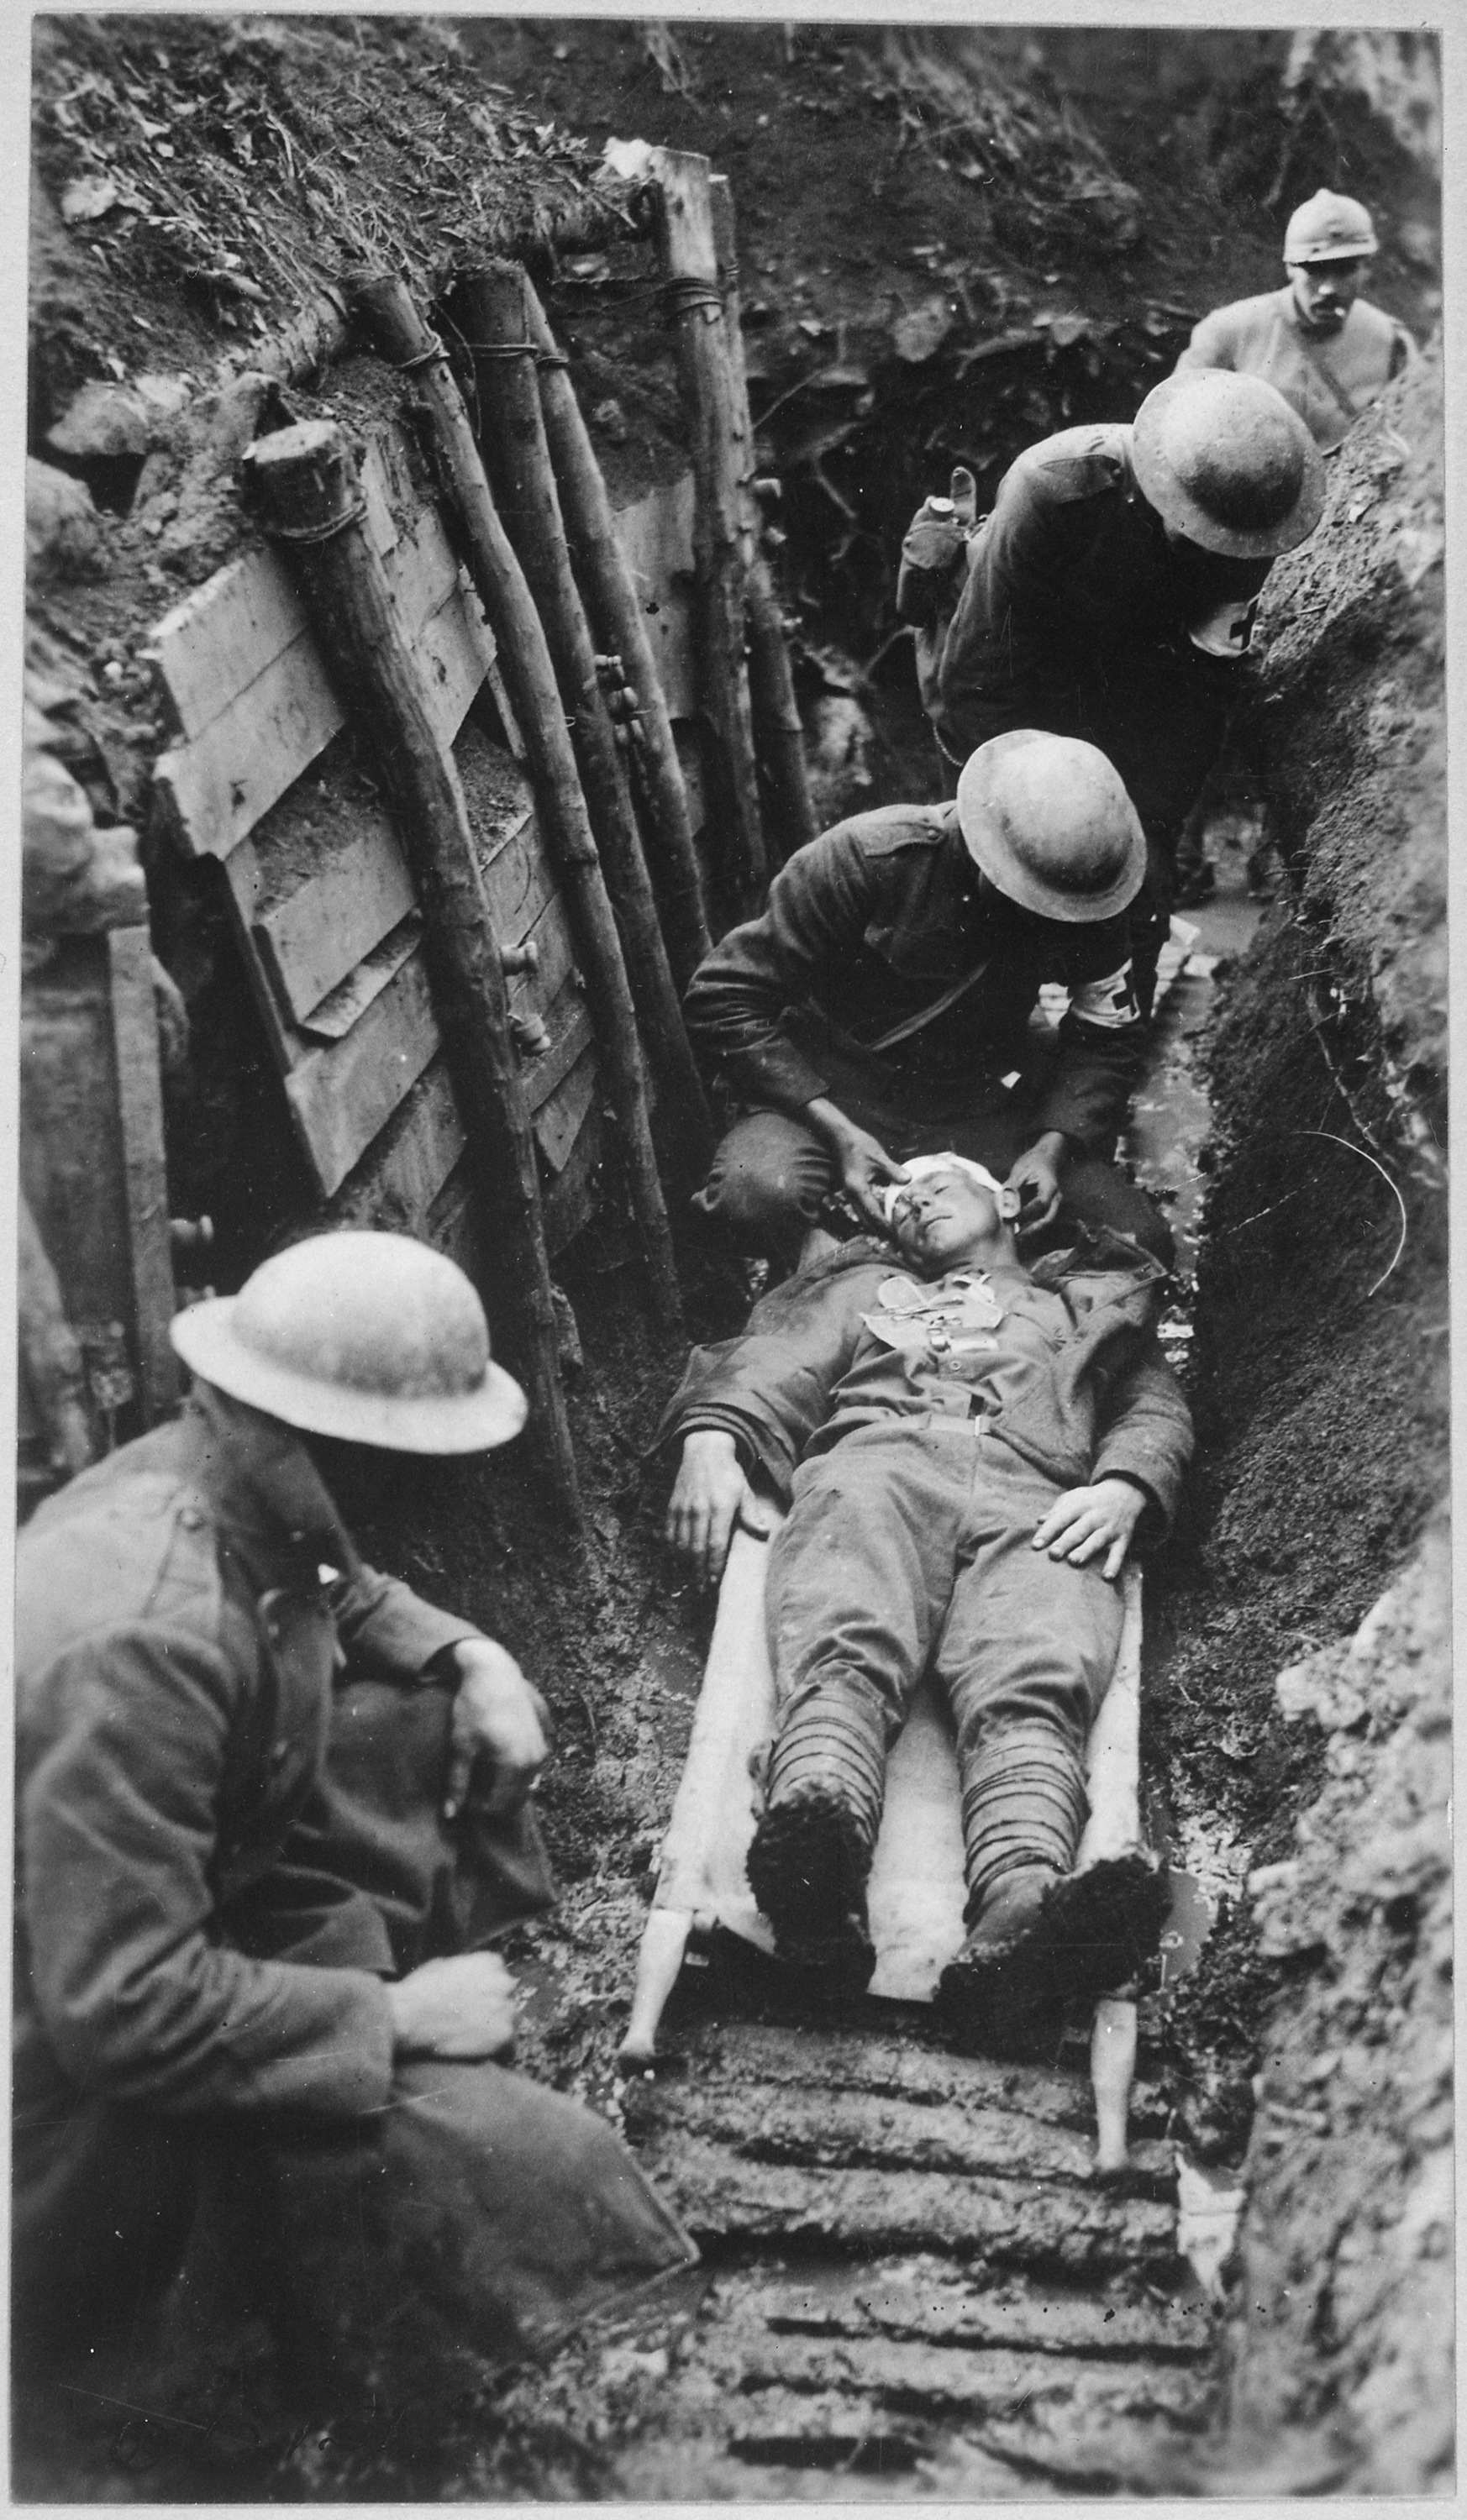 Marine_receiving_first_aid_before_being_sent_to_hospital_in_rear_of_trenches._Toulon_Sector_France._03-22-1918_-_NARA_-_530724.jpg